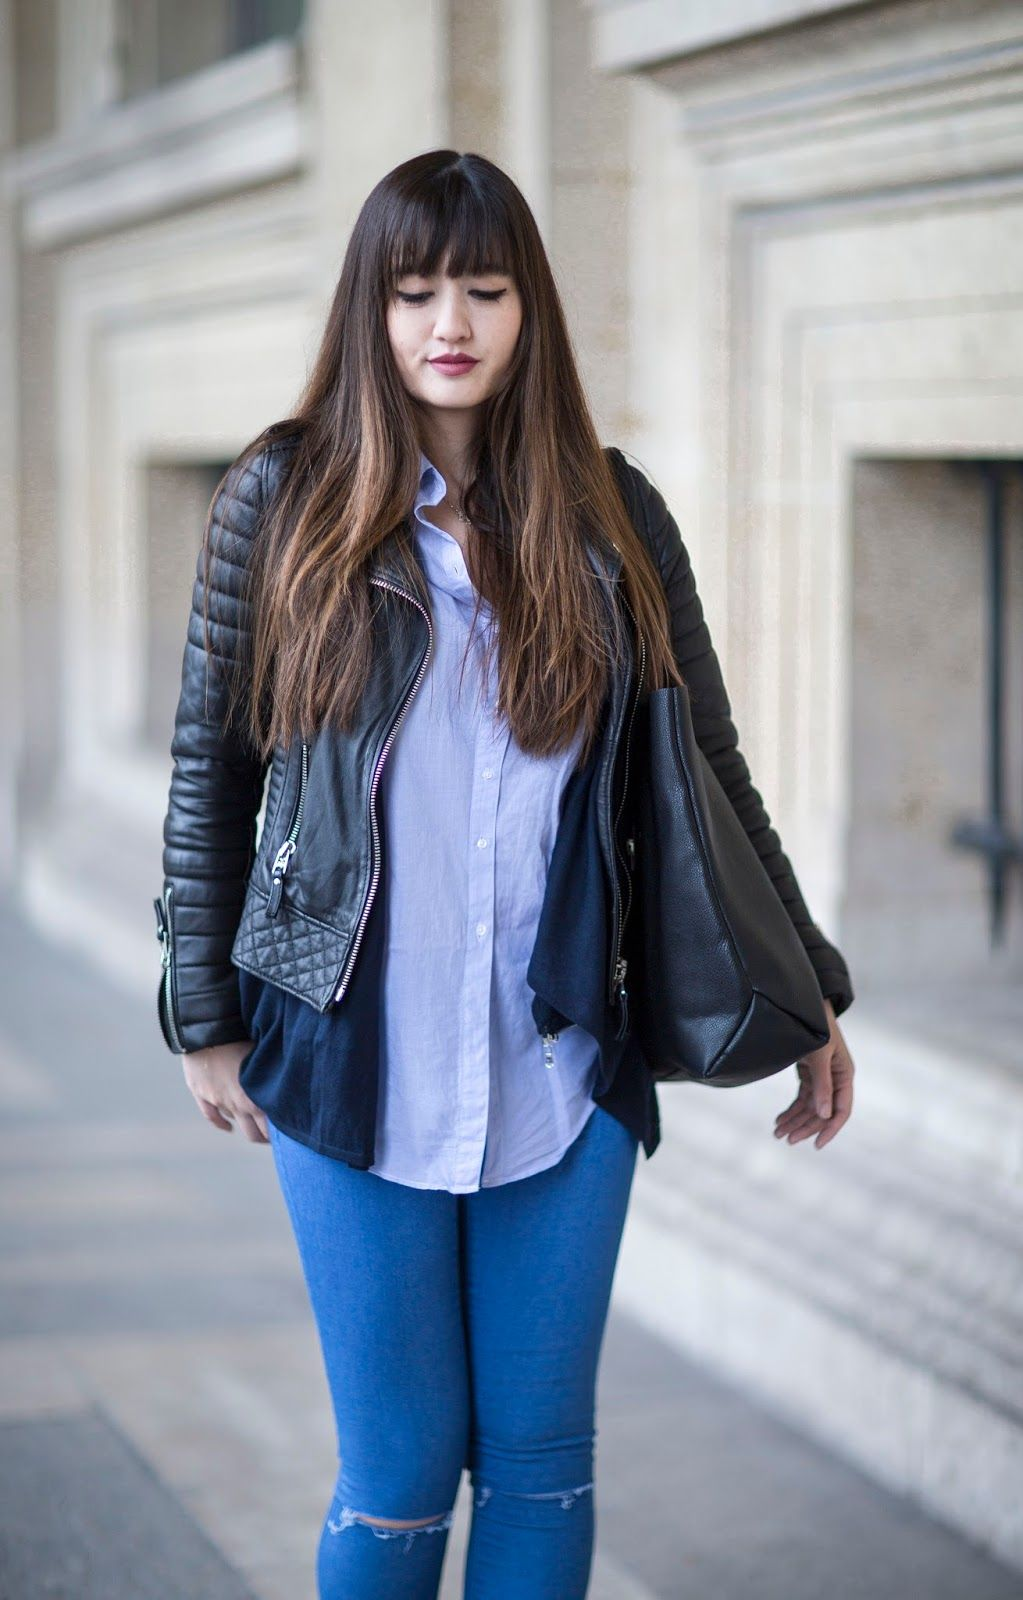 meet me in paree, blogger, fashion, look, style, streetstyle, mode, parisian, chic style